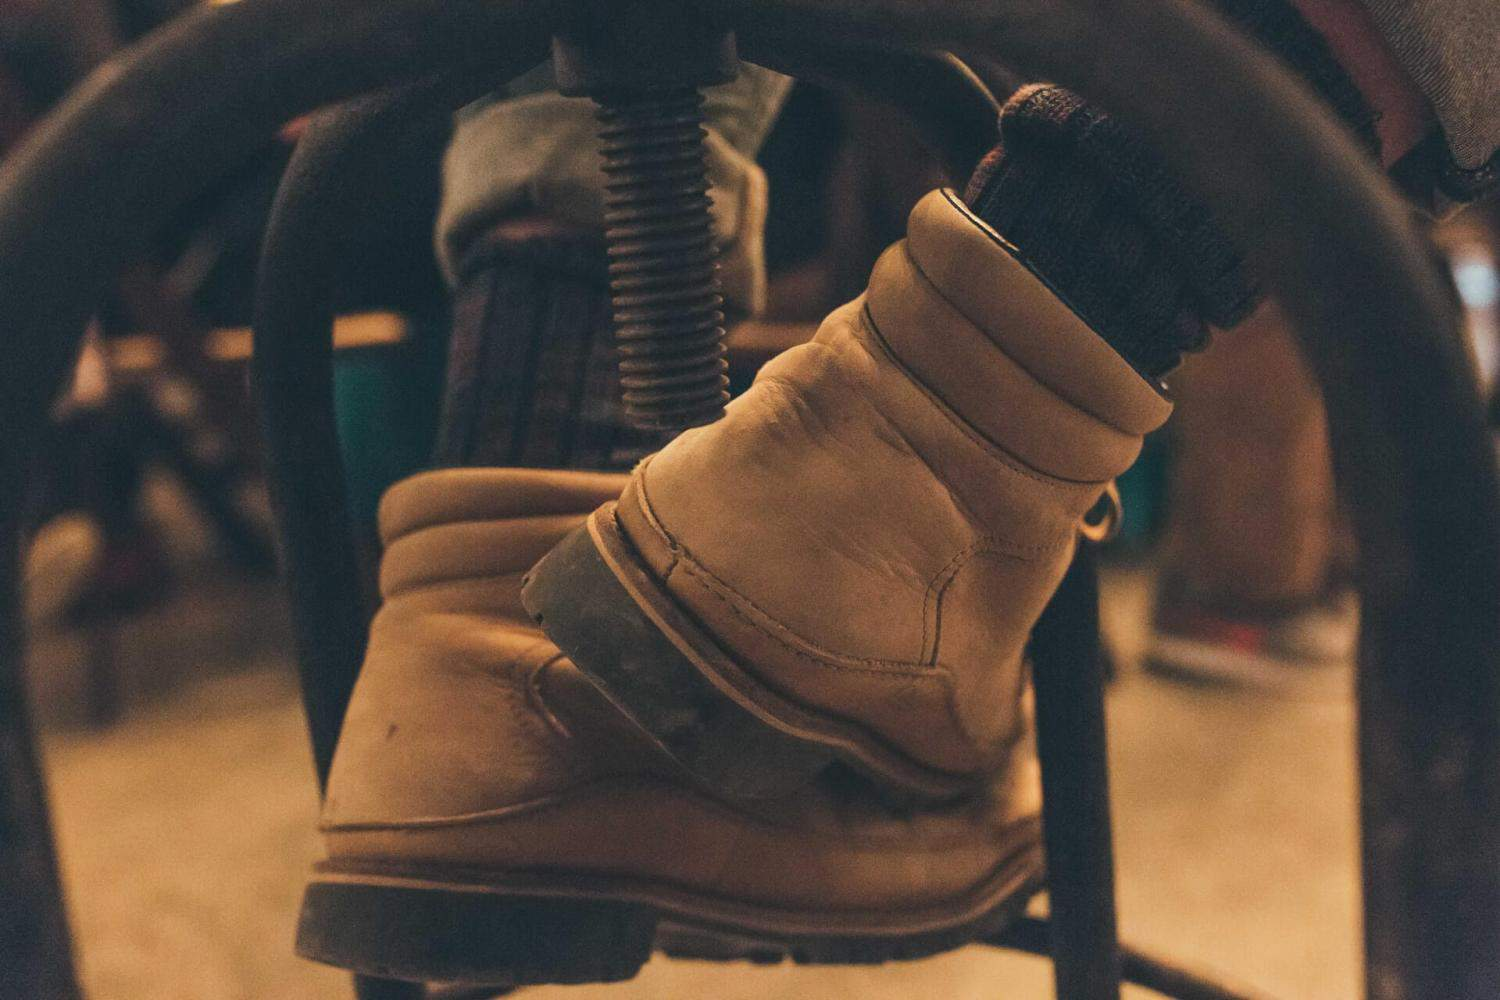 vegan timberlands person wearing boots while sitting on a chair